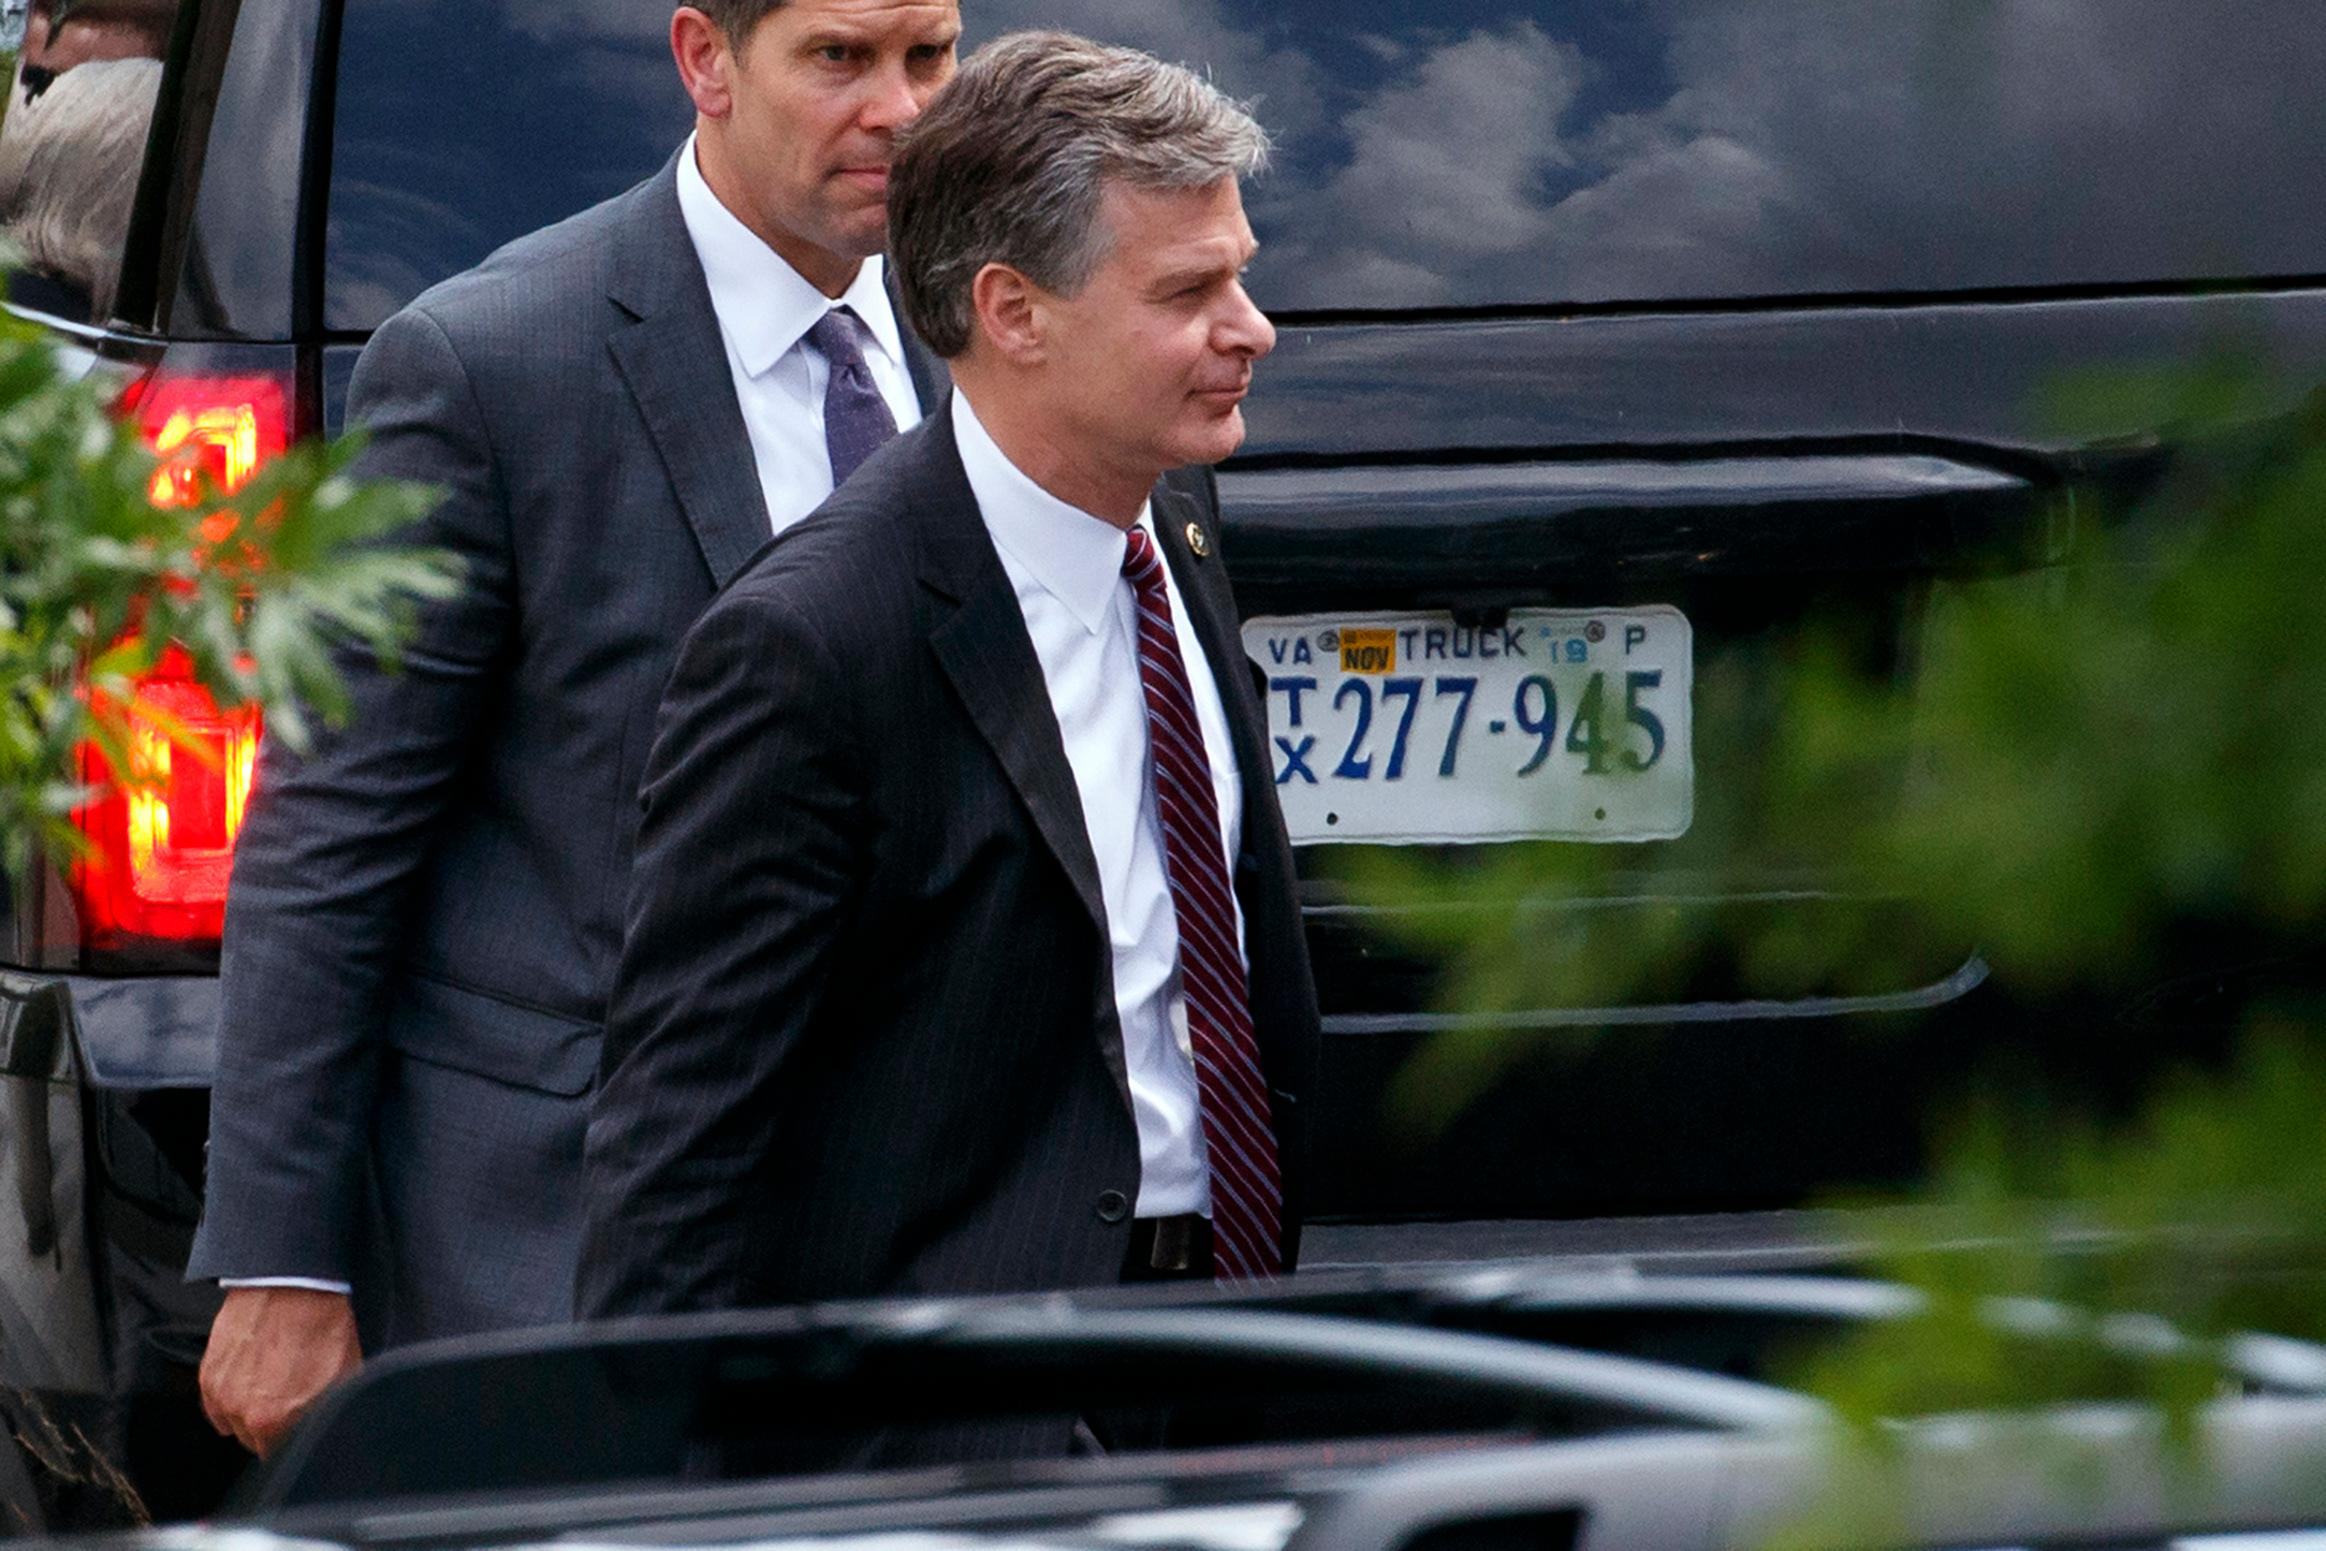 FBI Director Christopher Wray, right, leaves the White House, Monday, May 21, 2018, in Washington. (AP Photo/Evan Vucci)